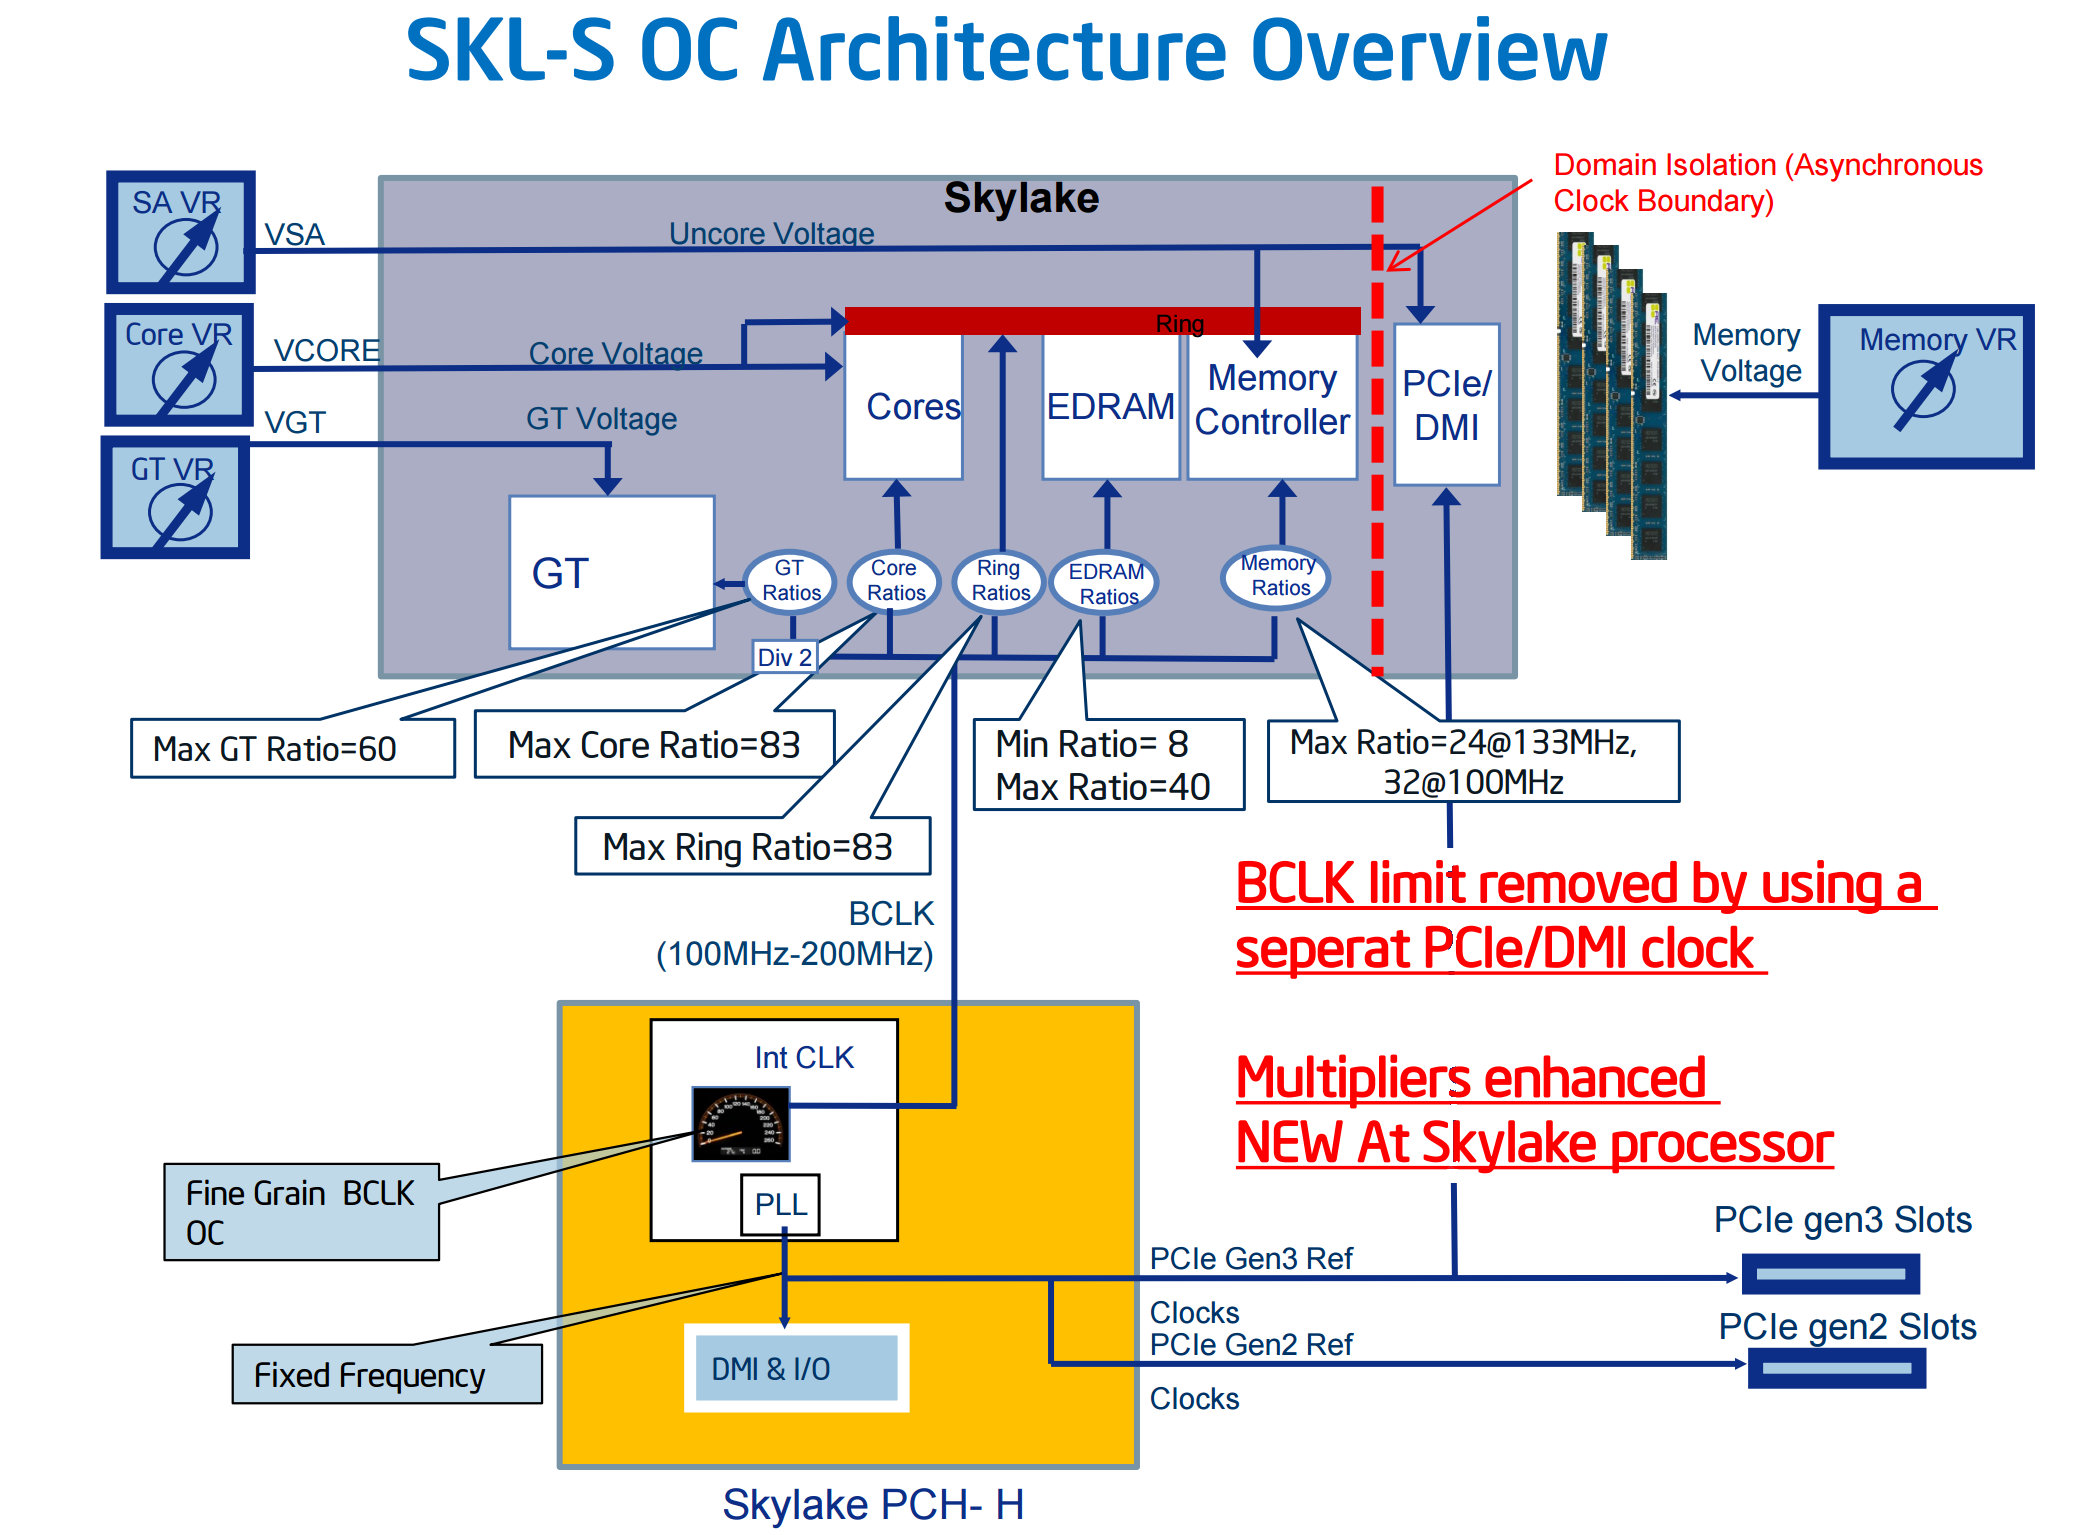 Bclk Overclocking Intels Non K Skylake Processors Coming Soon Pentium 4 Block Diagram Despite This Our Best Efforts To Overclock In House We Have An I5 6500 For Review At Some Point Are Limited A Few Mhz The 103 104